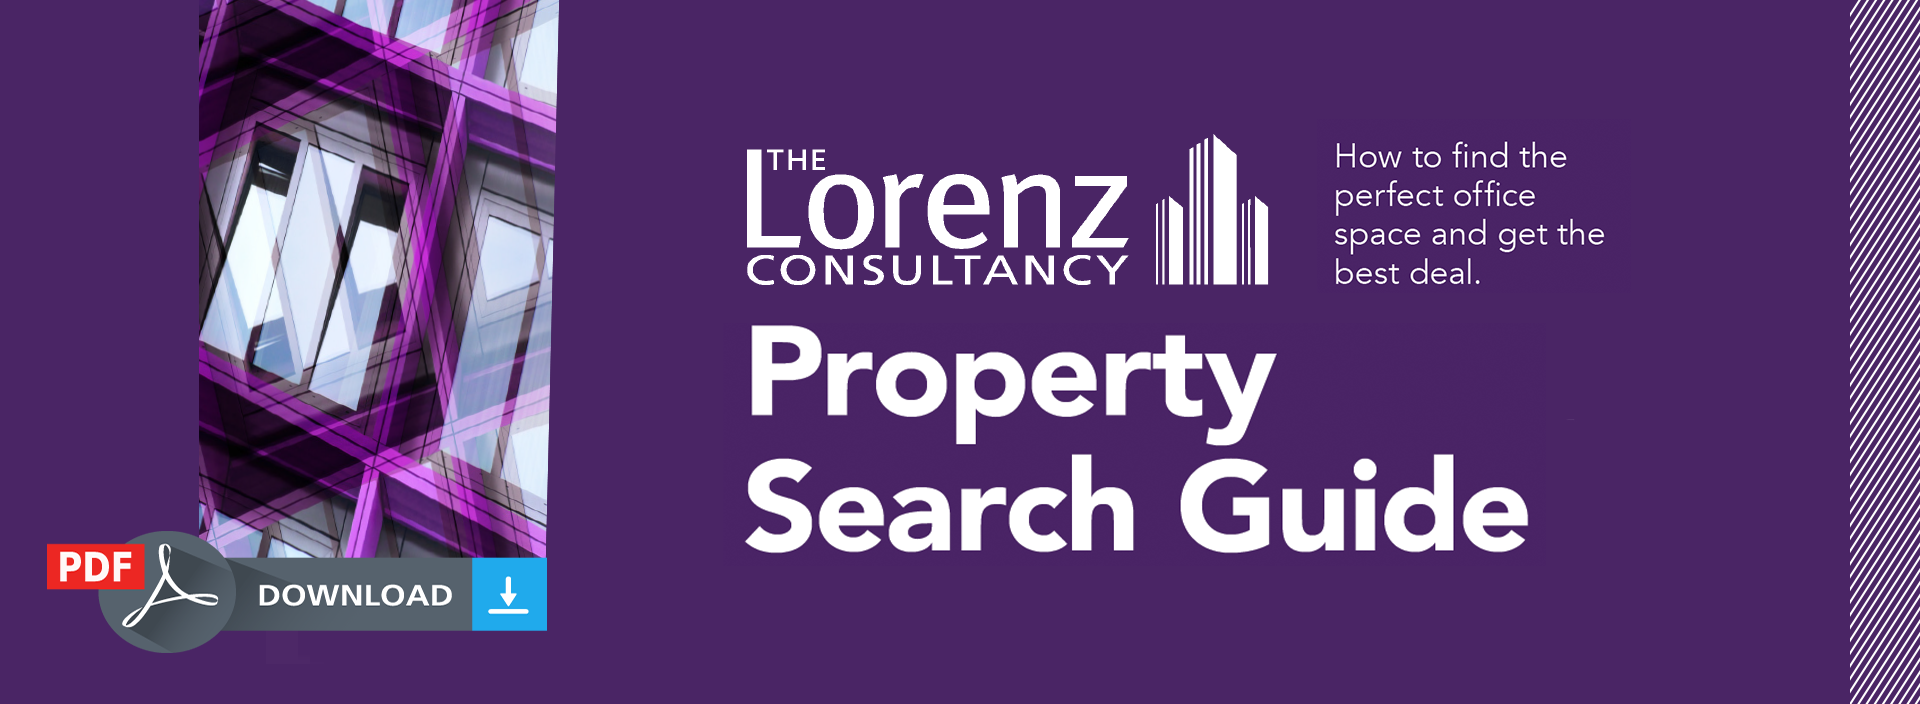 Property Search Guide - Landing Page Header.png